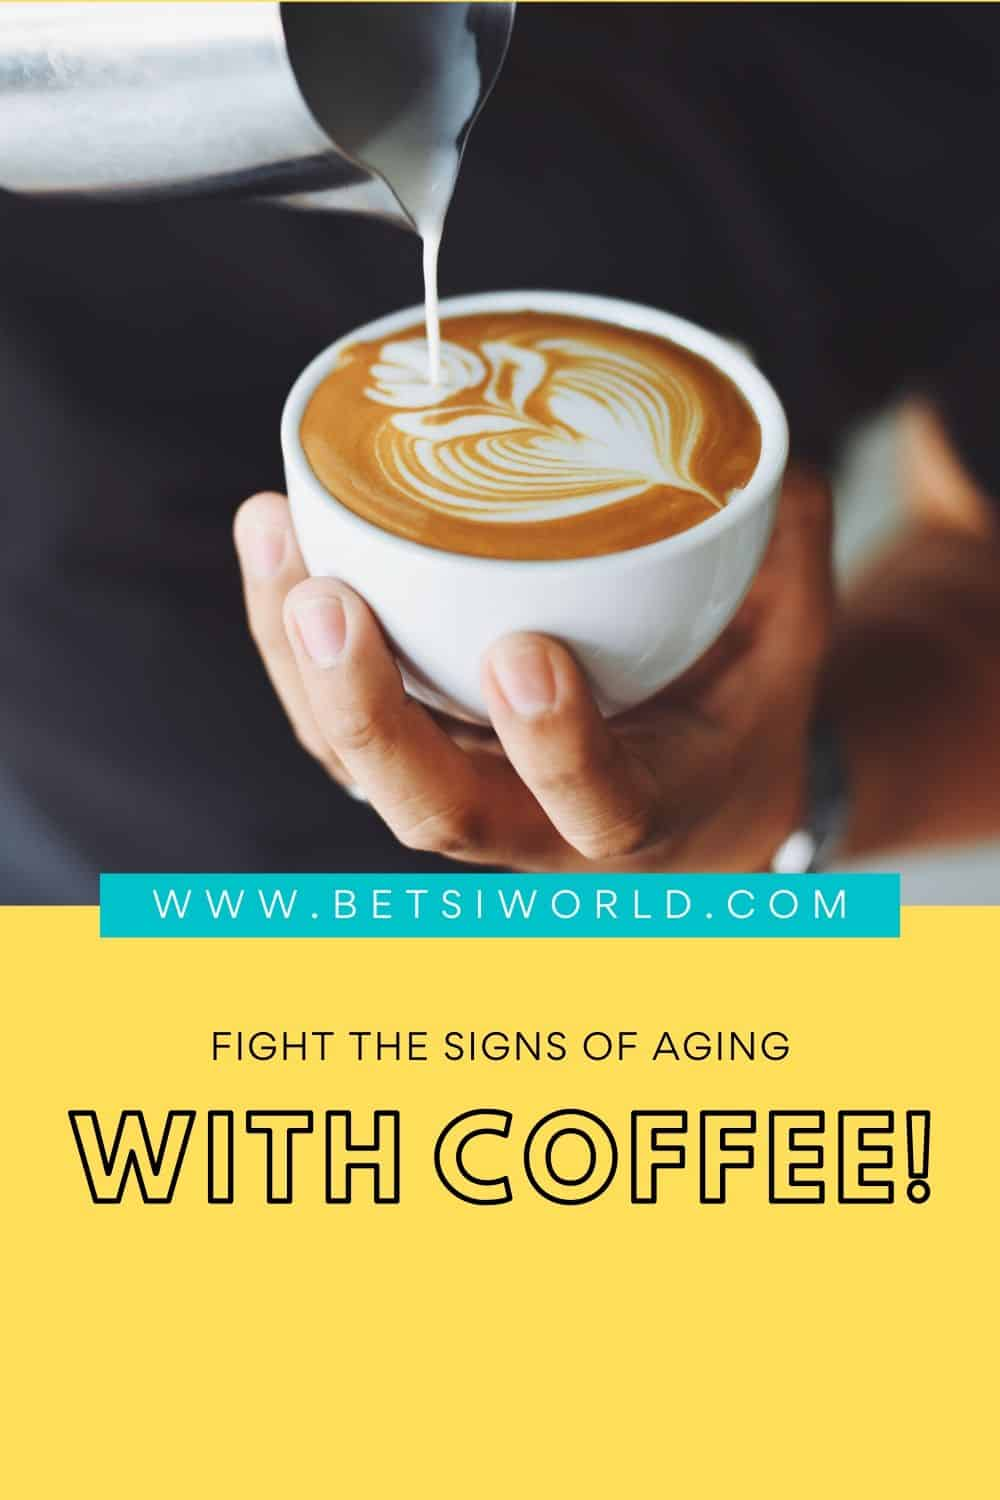 Many of us long for the first cup of coffee in the morning to help jump start our day. Coffee, or actually the caffeine in coffee is a a natural way to fight aging. So next time you pick up that delicious cup of coffee, remember you are fighting aging!